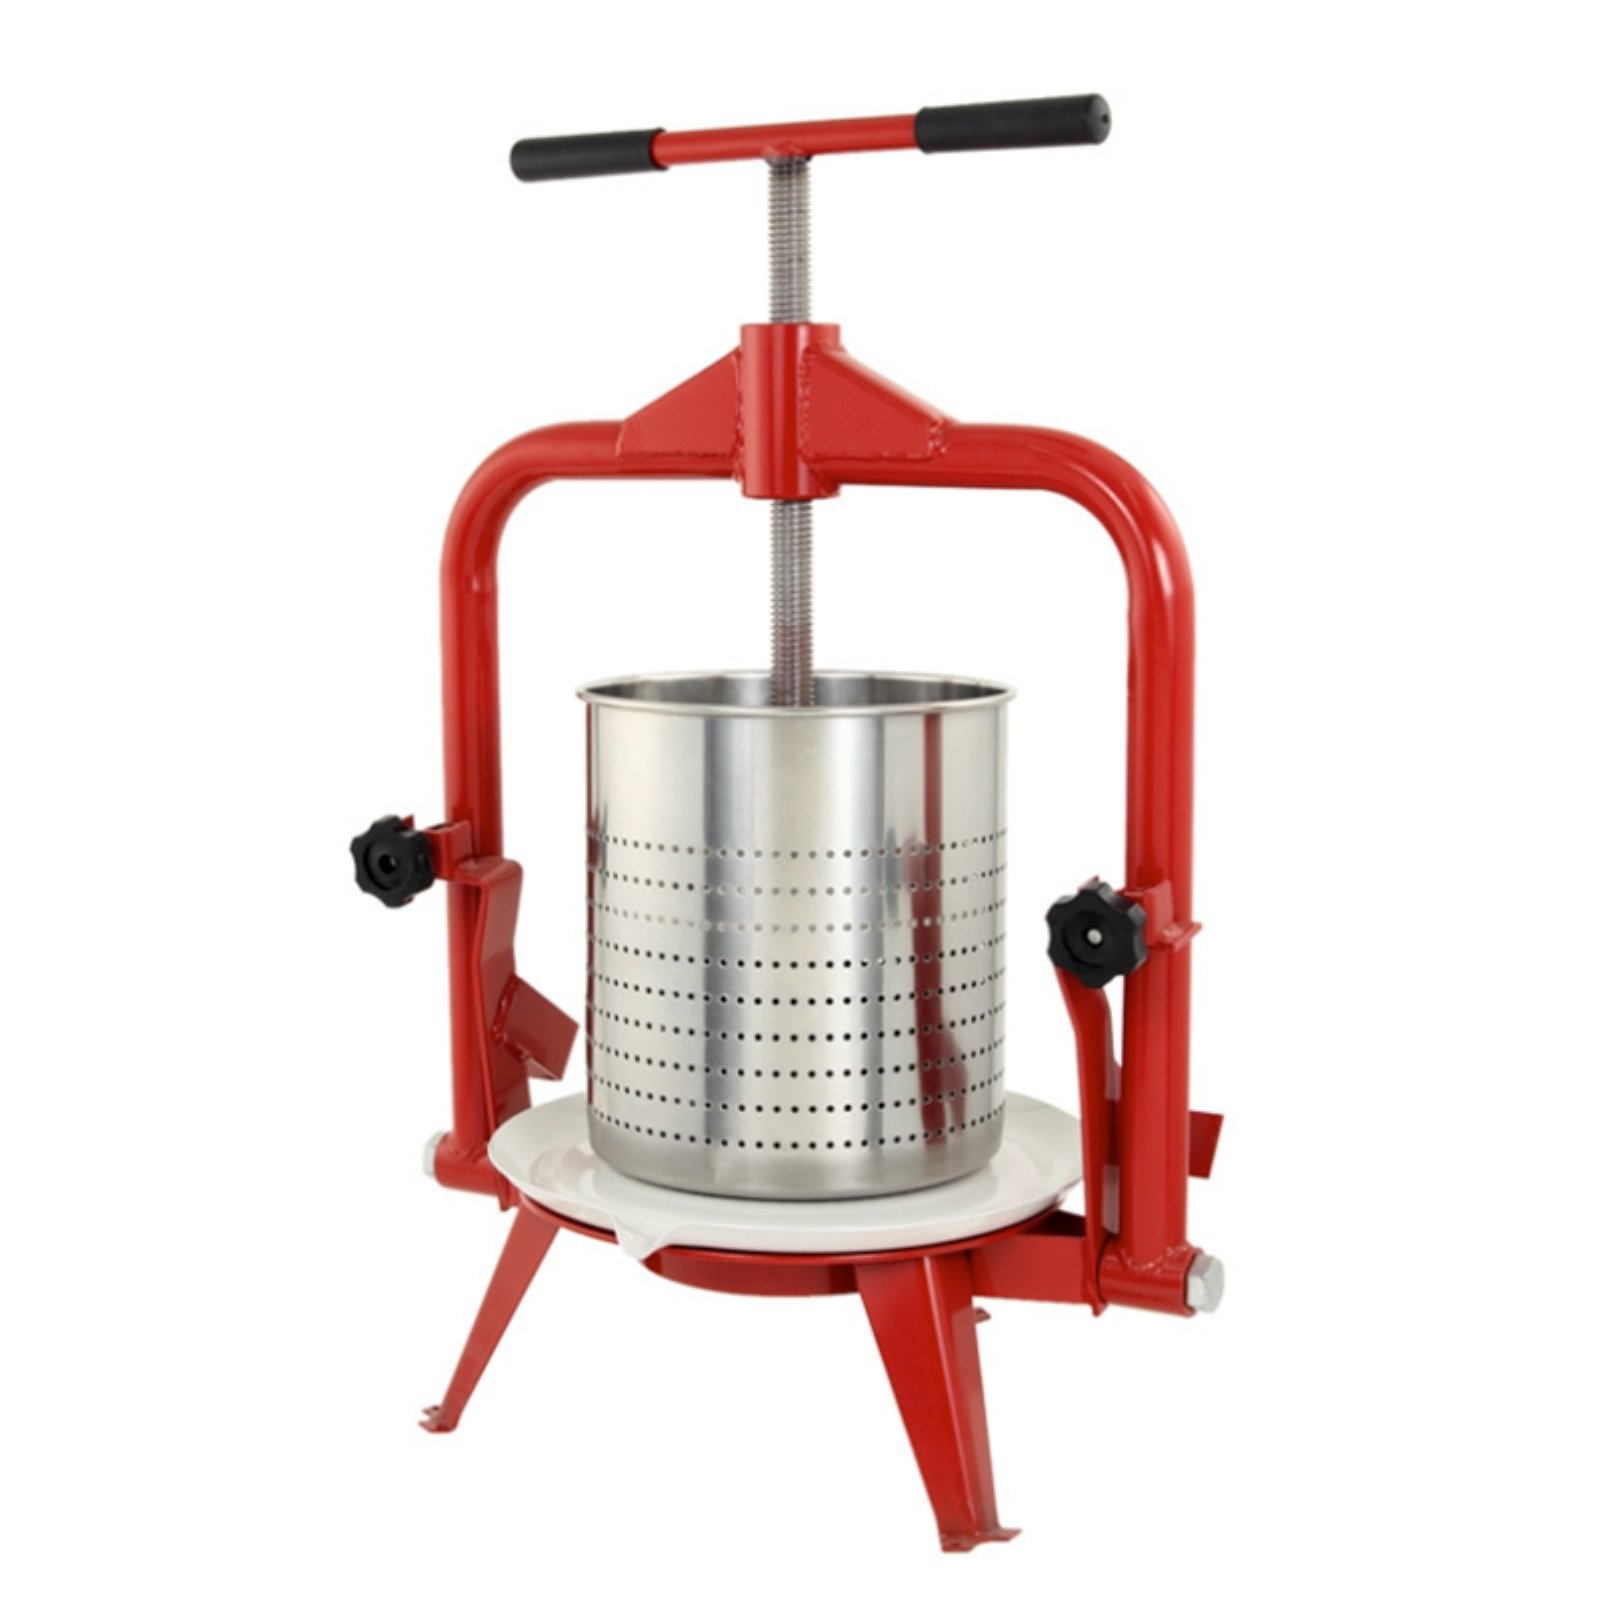 TSM Products Harvest Fiesta Fruit and Wine Press with Stainless Steel Basket